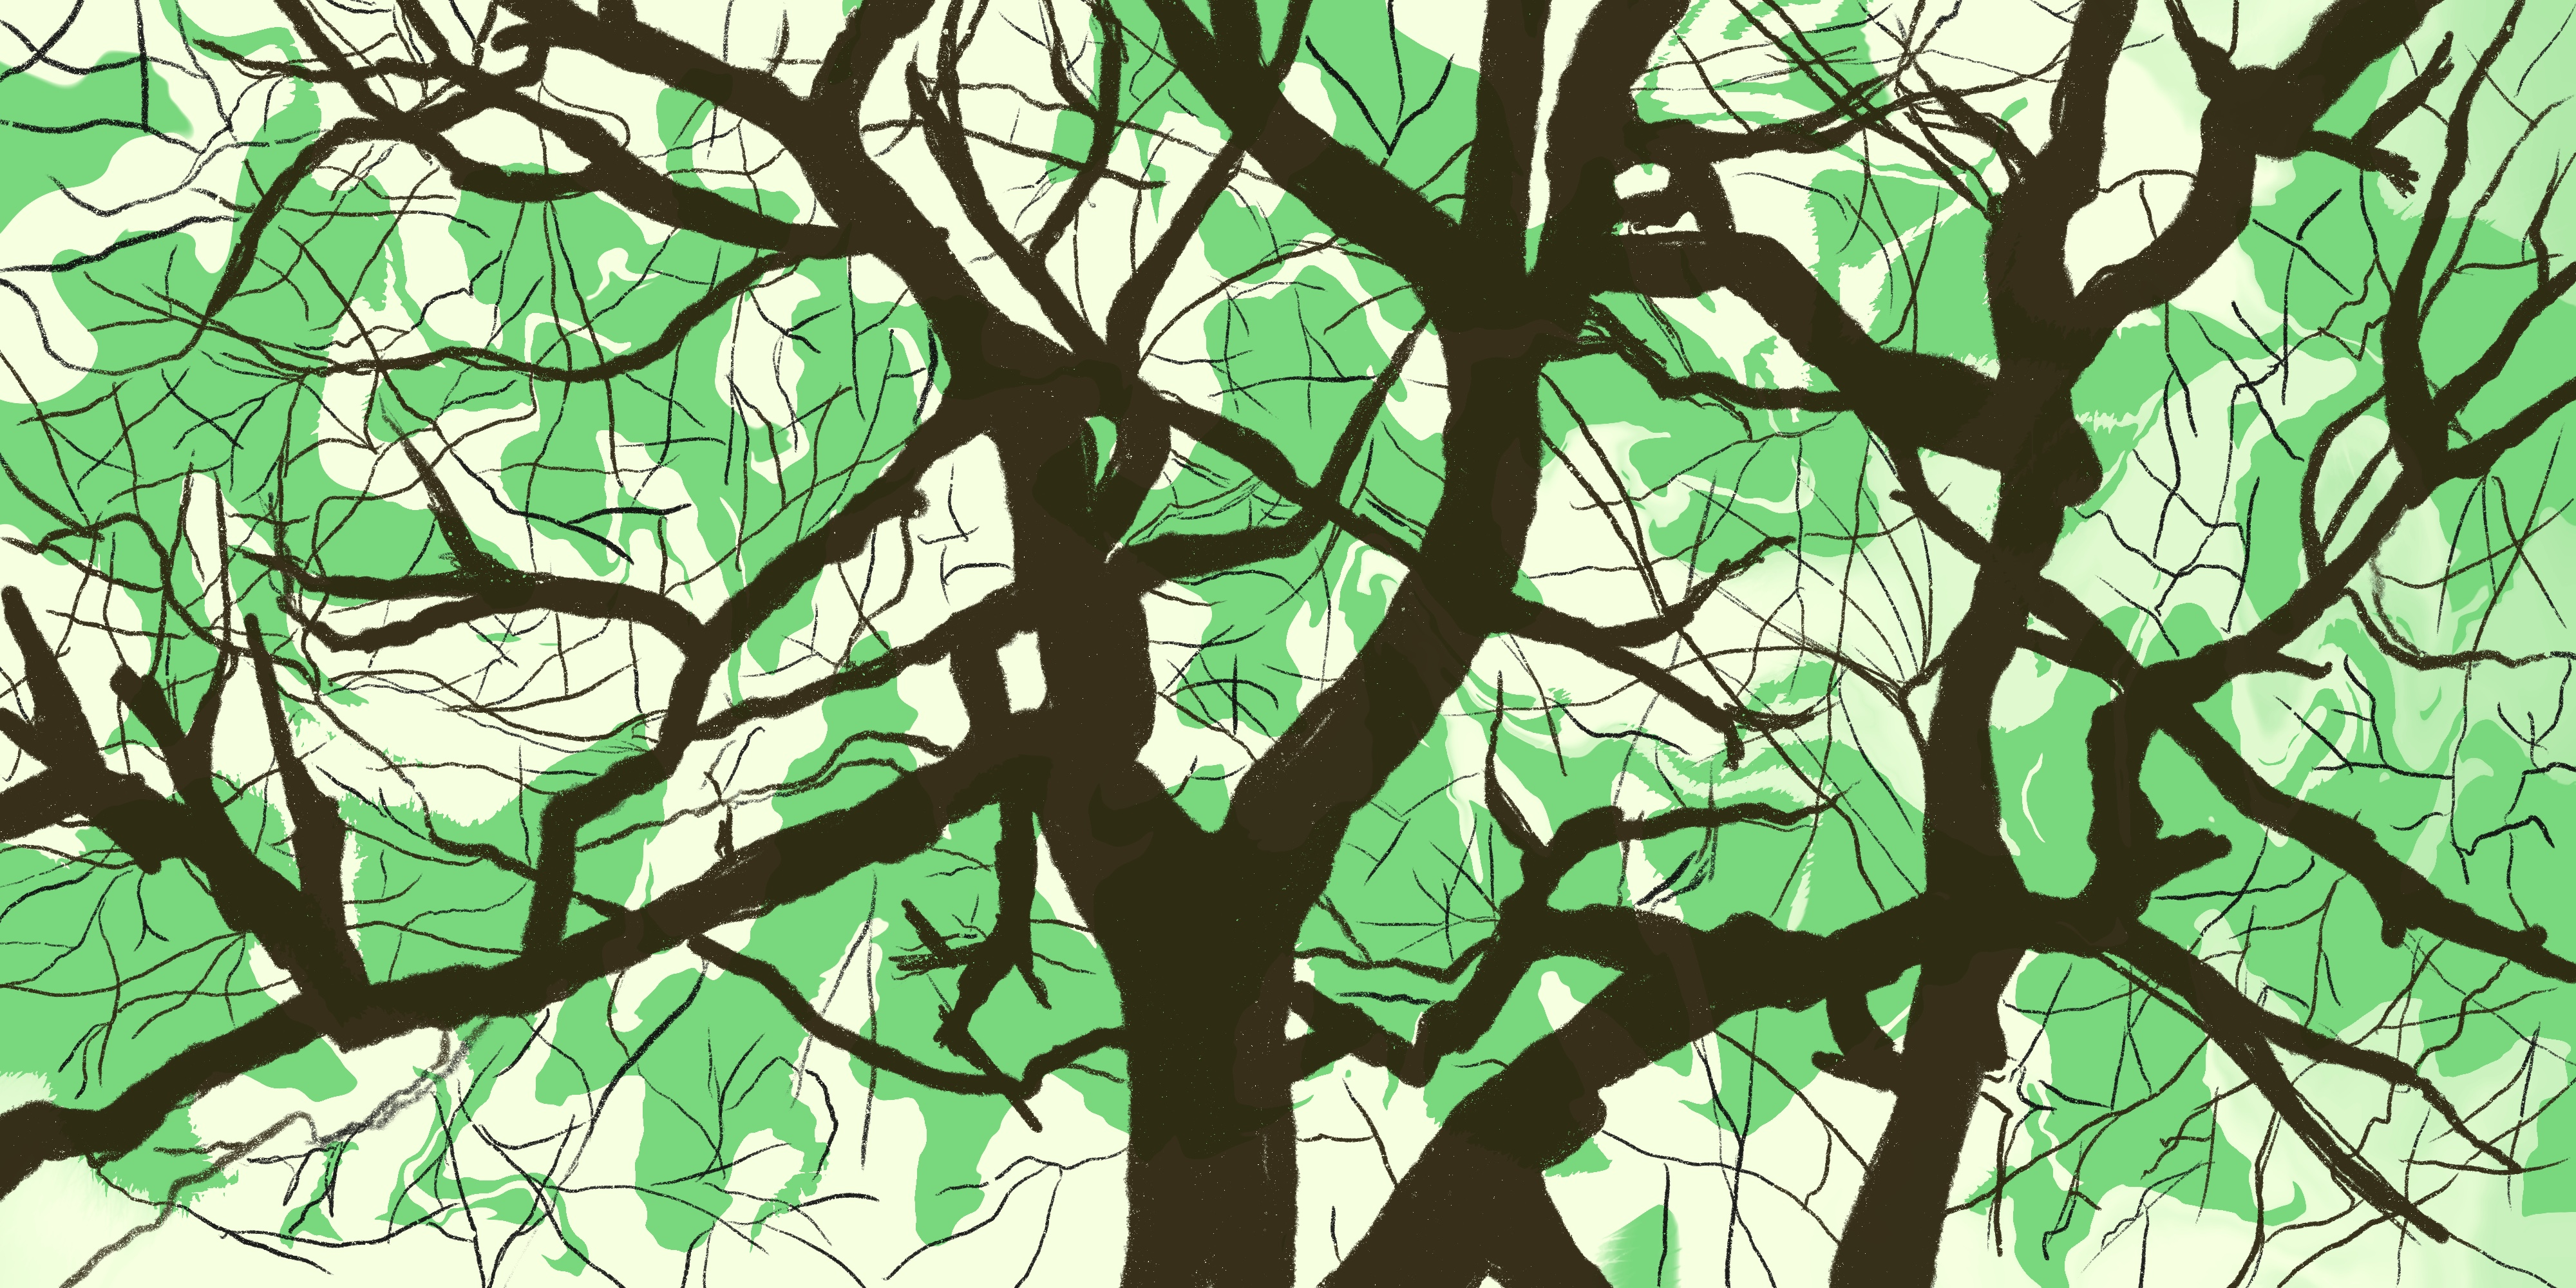 Tree illustration with green background